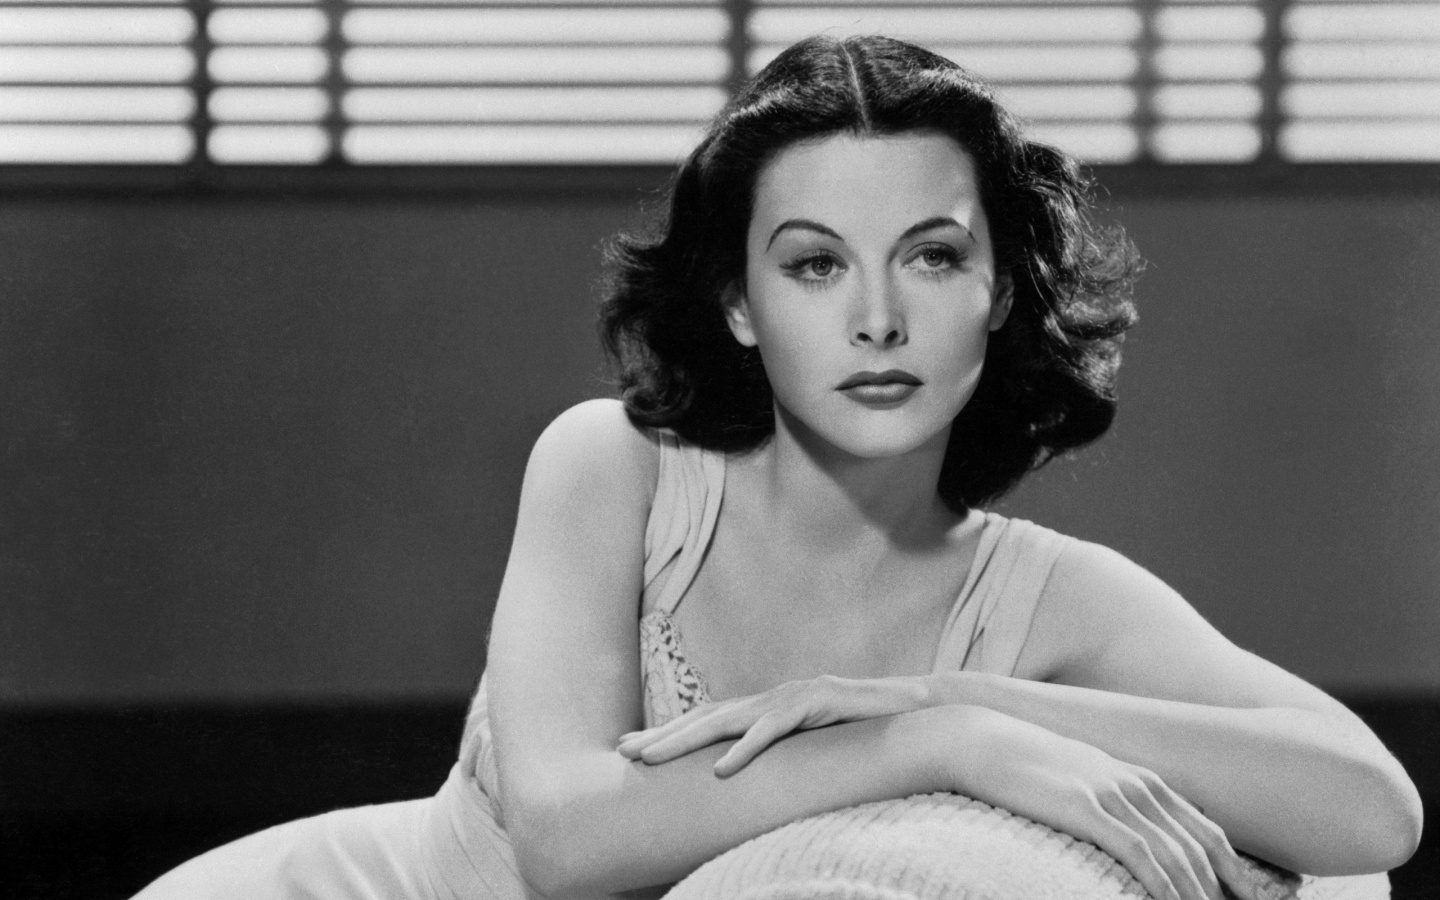 Hedy at a Hundred